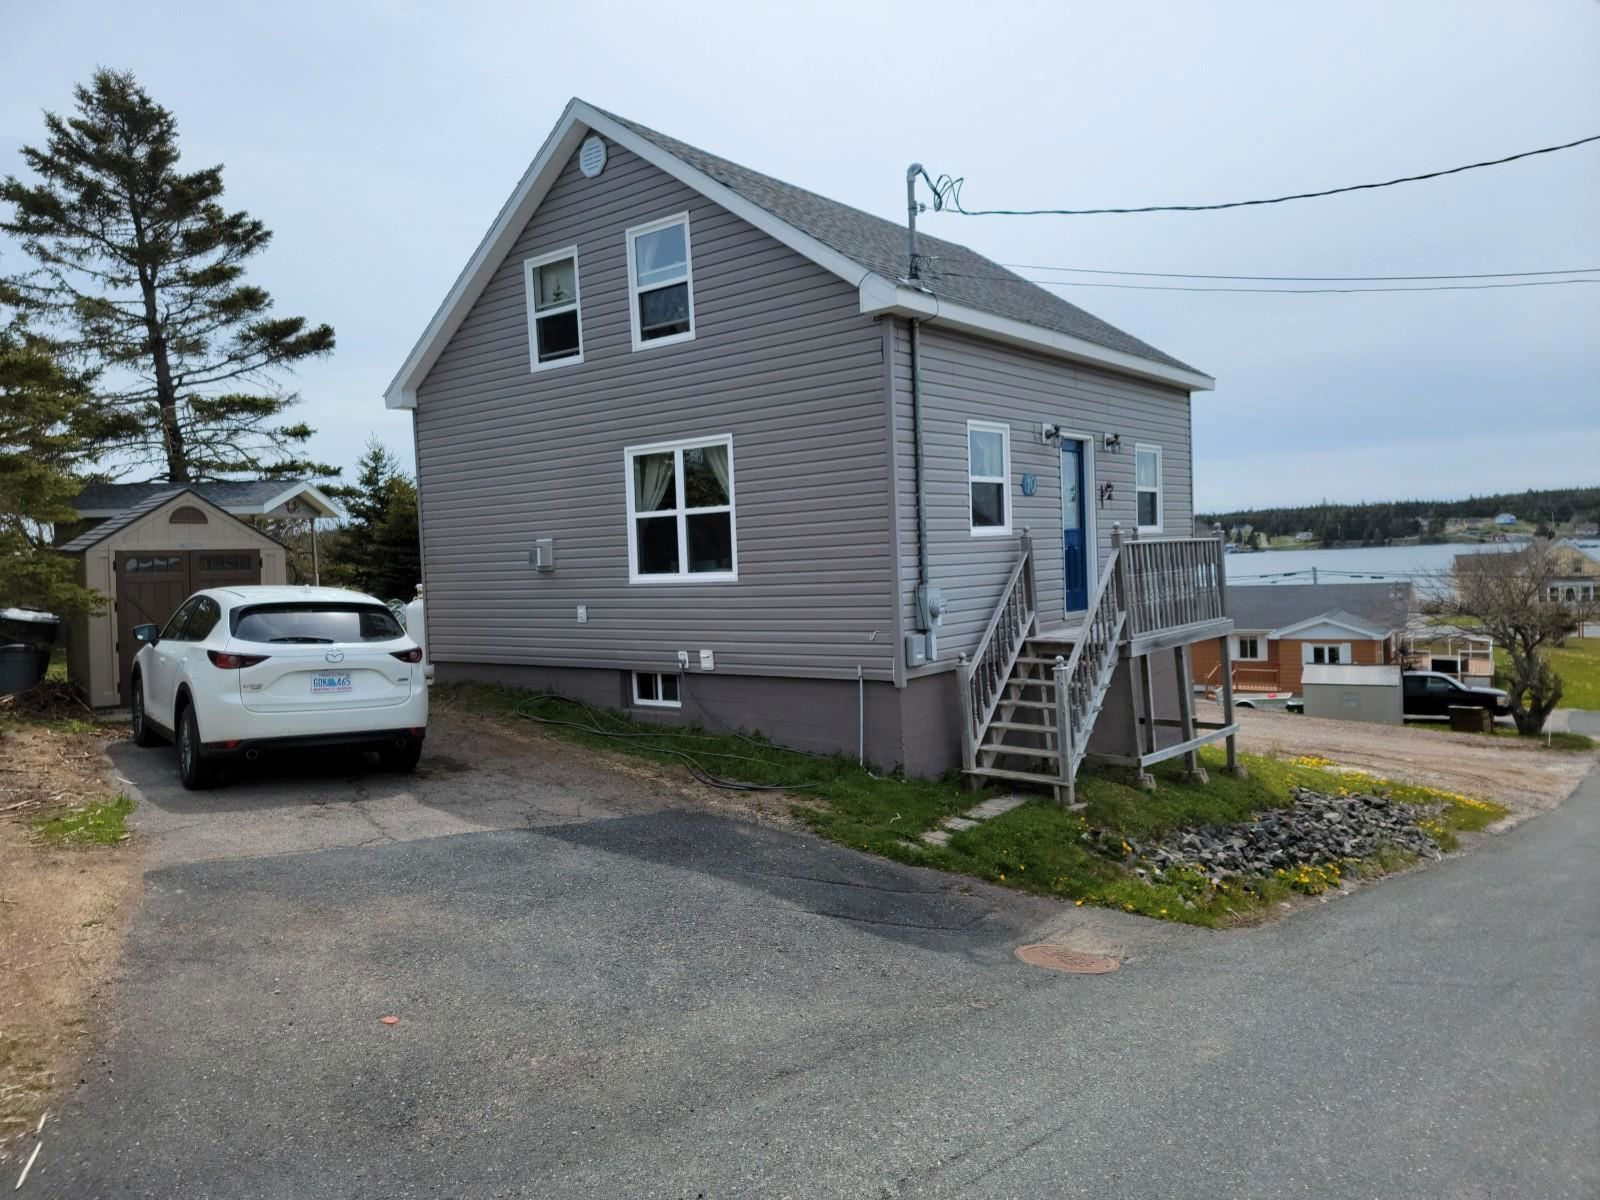 Main Photo: 10 Beatrice Street in Louisbourg: 206-Louisbourg Residential for sale (Cape Breton)  : MLS®# 202113603